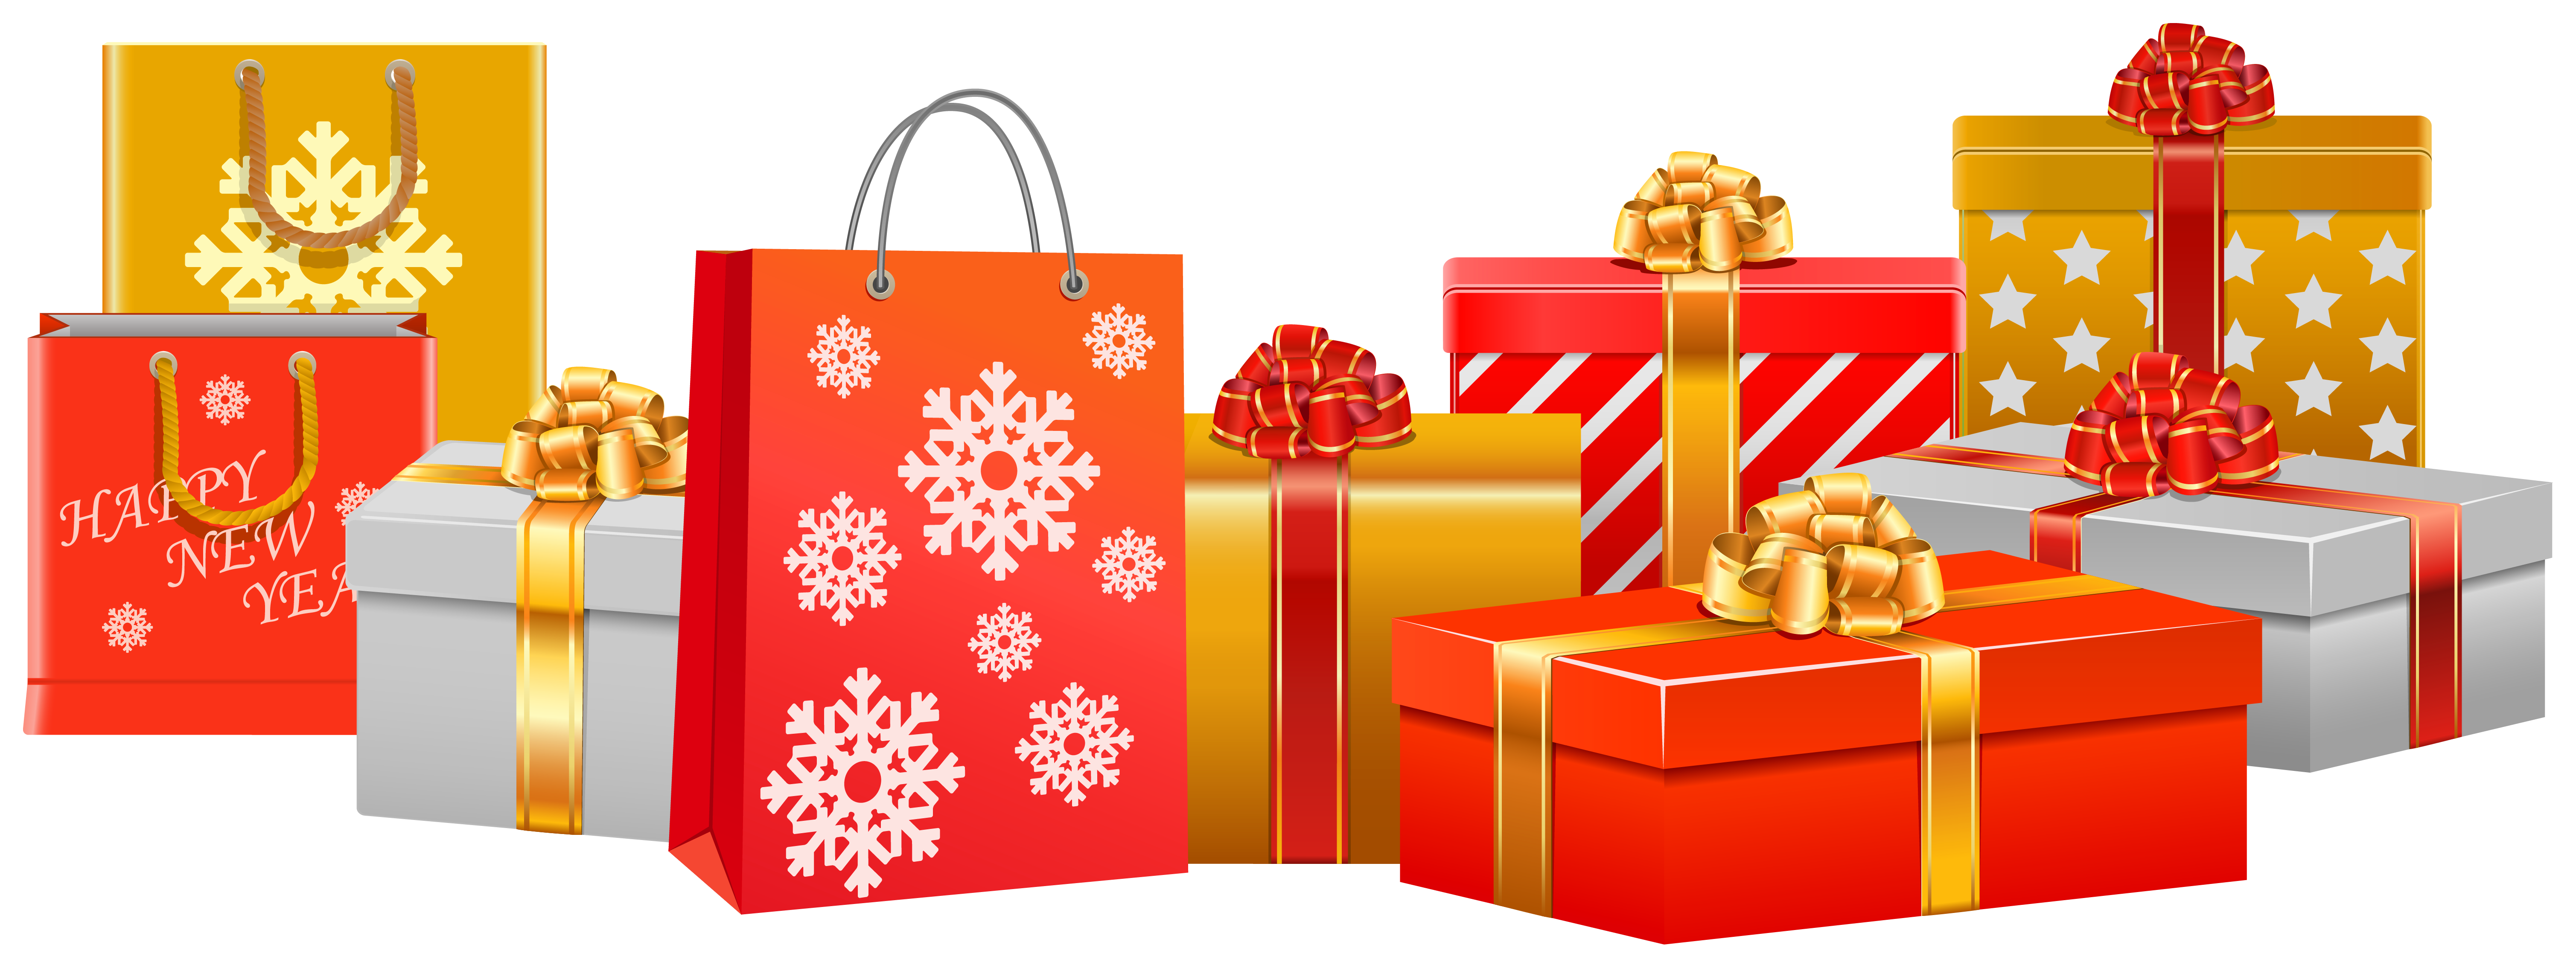 Clipart present parcel. Christmas gifts png image